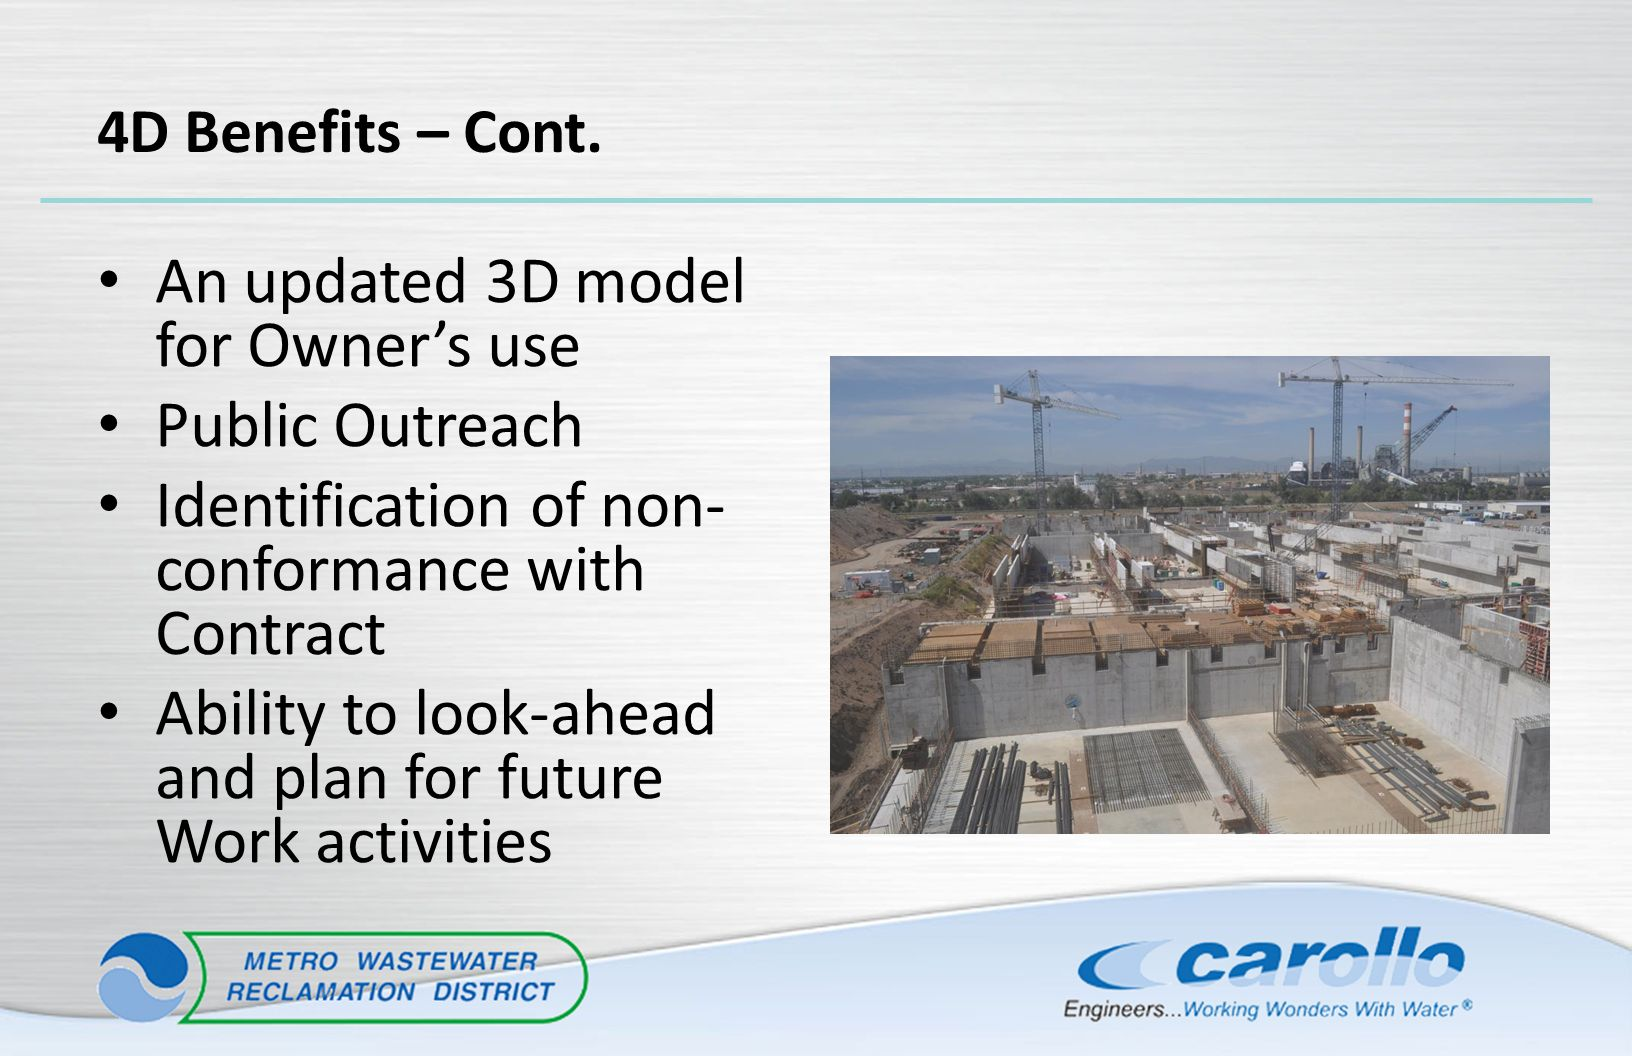 4D Benefits – Cont. An updated 3D model for Owner's use Public Outreach Identification of non- conformance with Contract Ability to look-ahead and pla